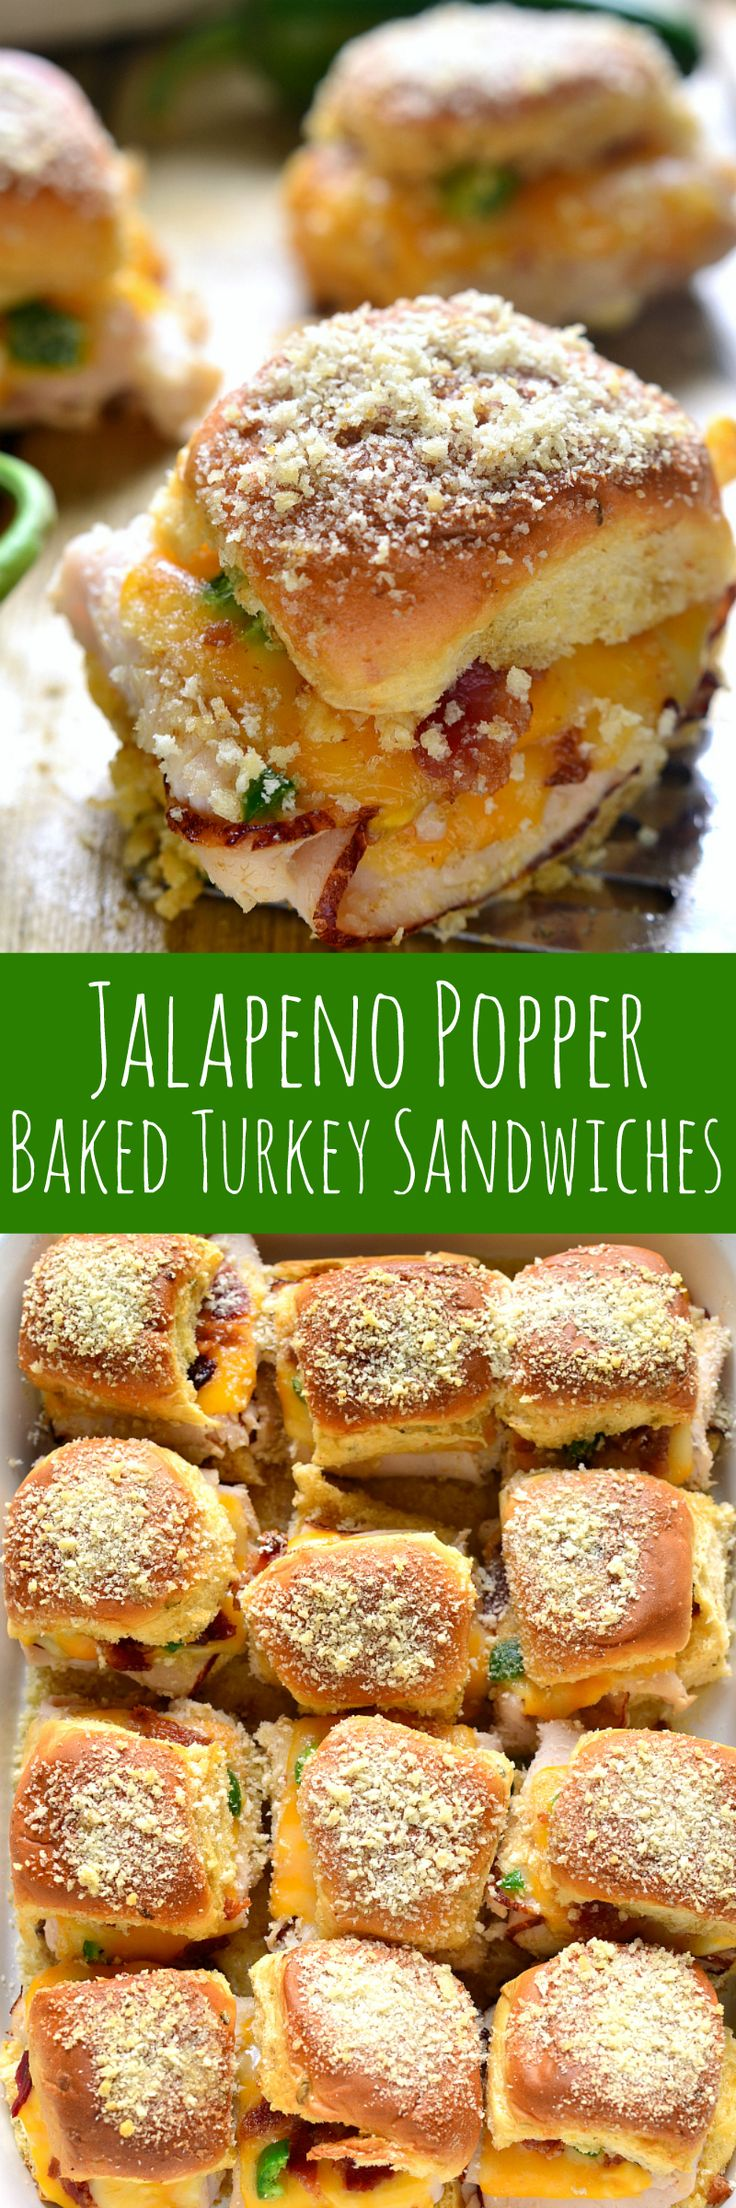 These Jalapeño Popper Baked Turkey Sandwiches are a delicious pairing of two fa…